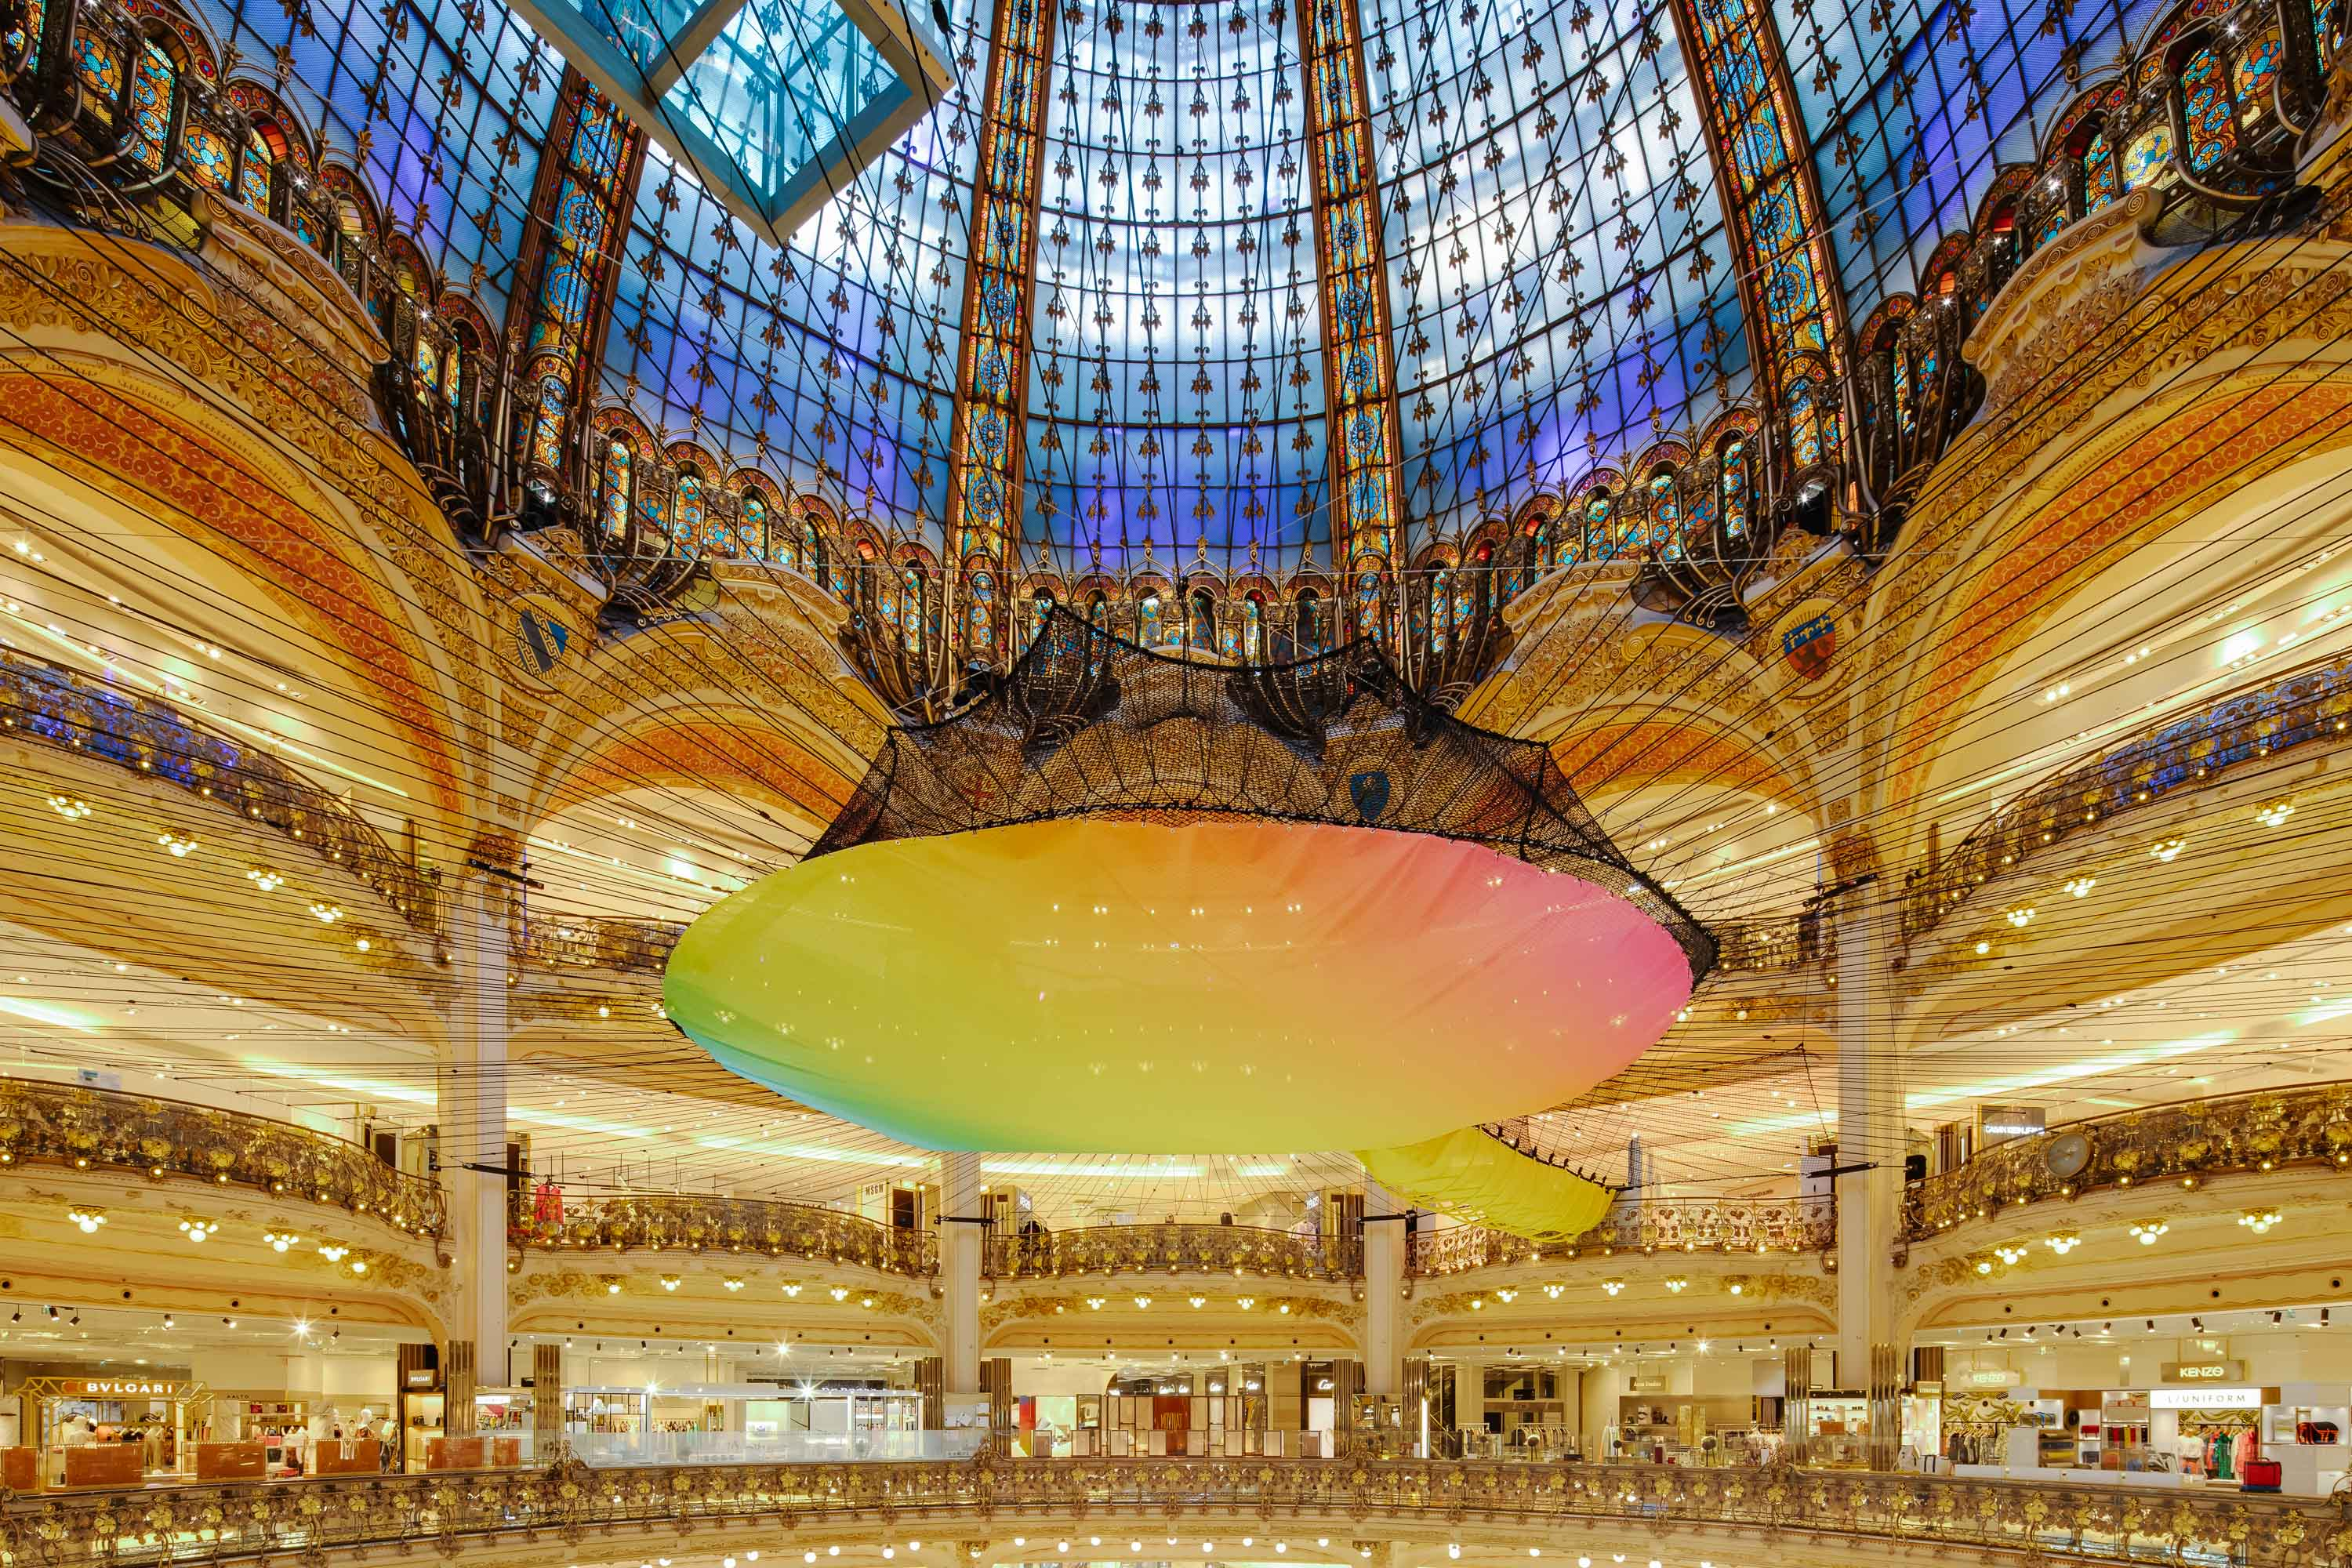 Funorama: Bouncy Rainbow Net Suspended Above a Paris Shopping Center